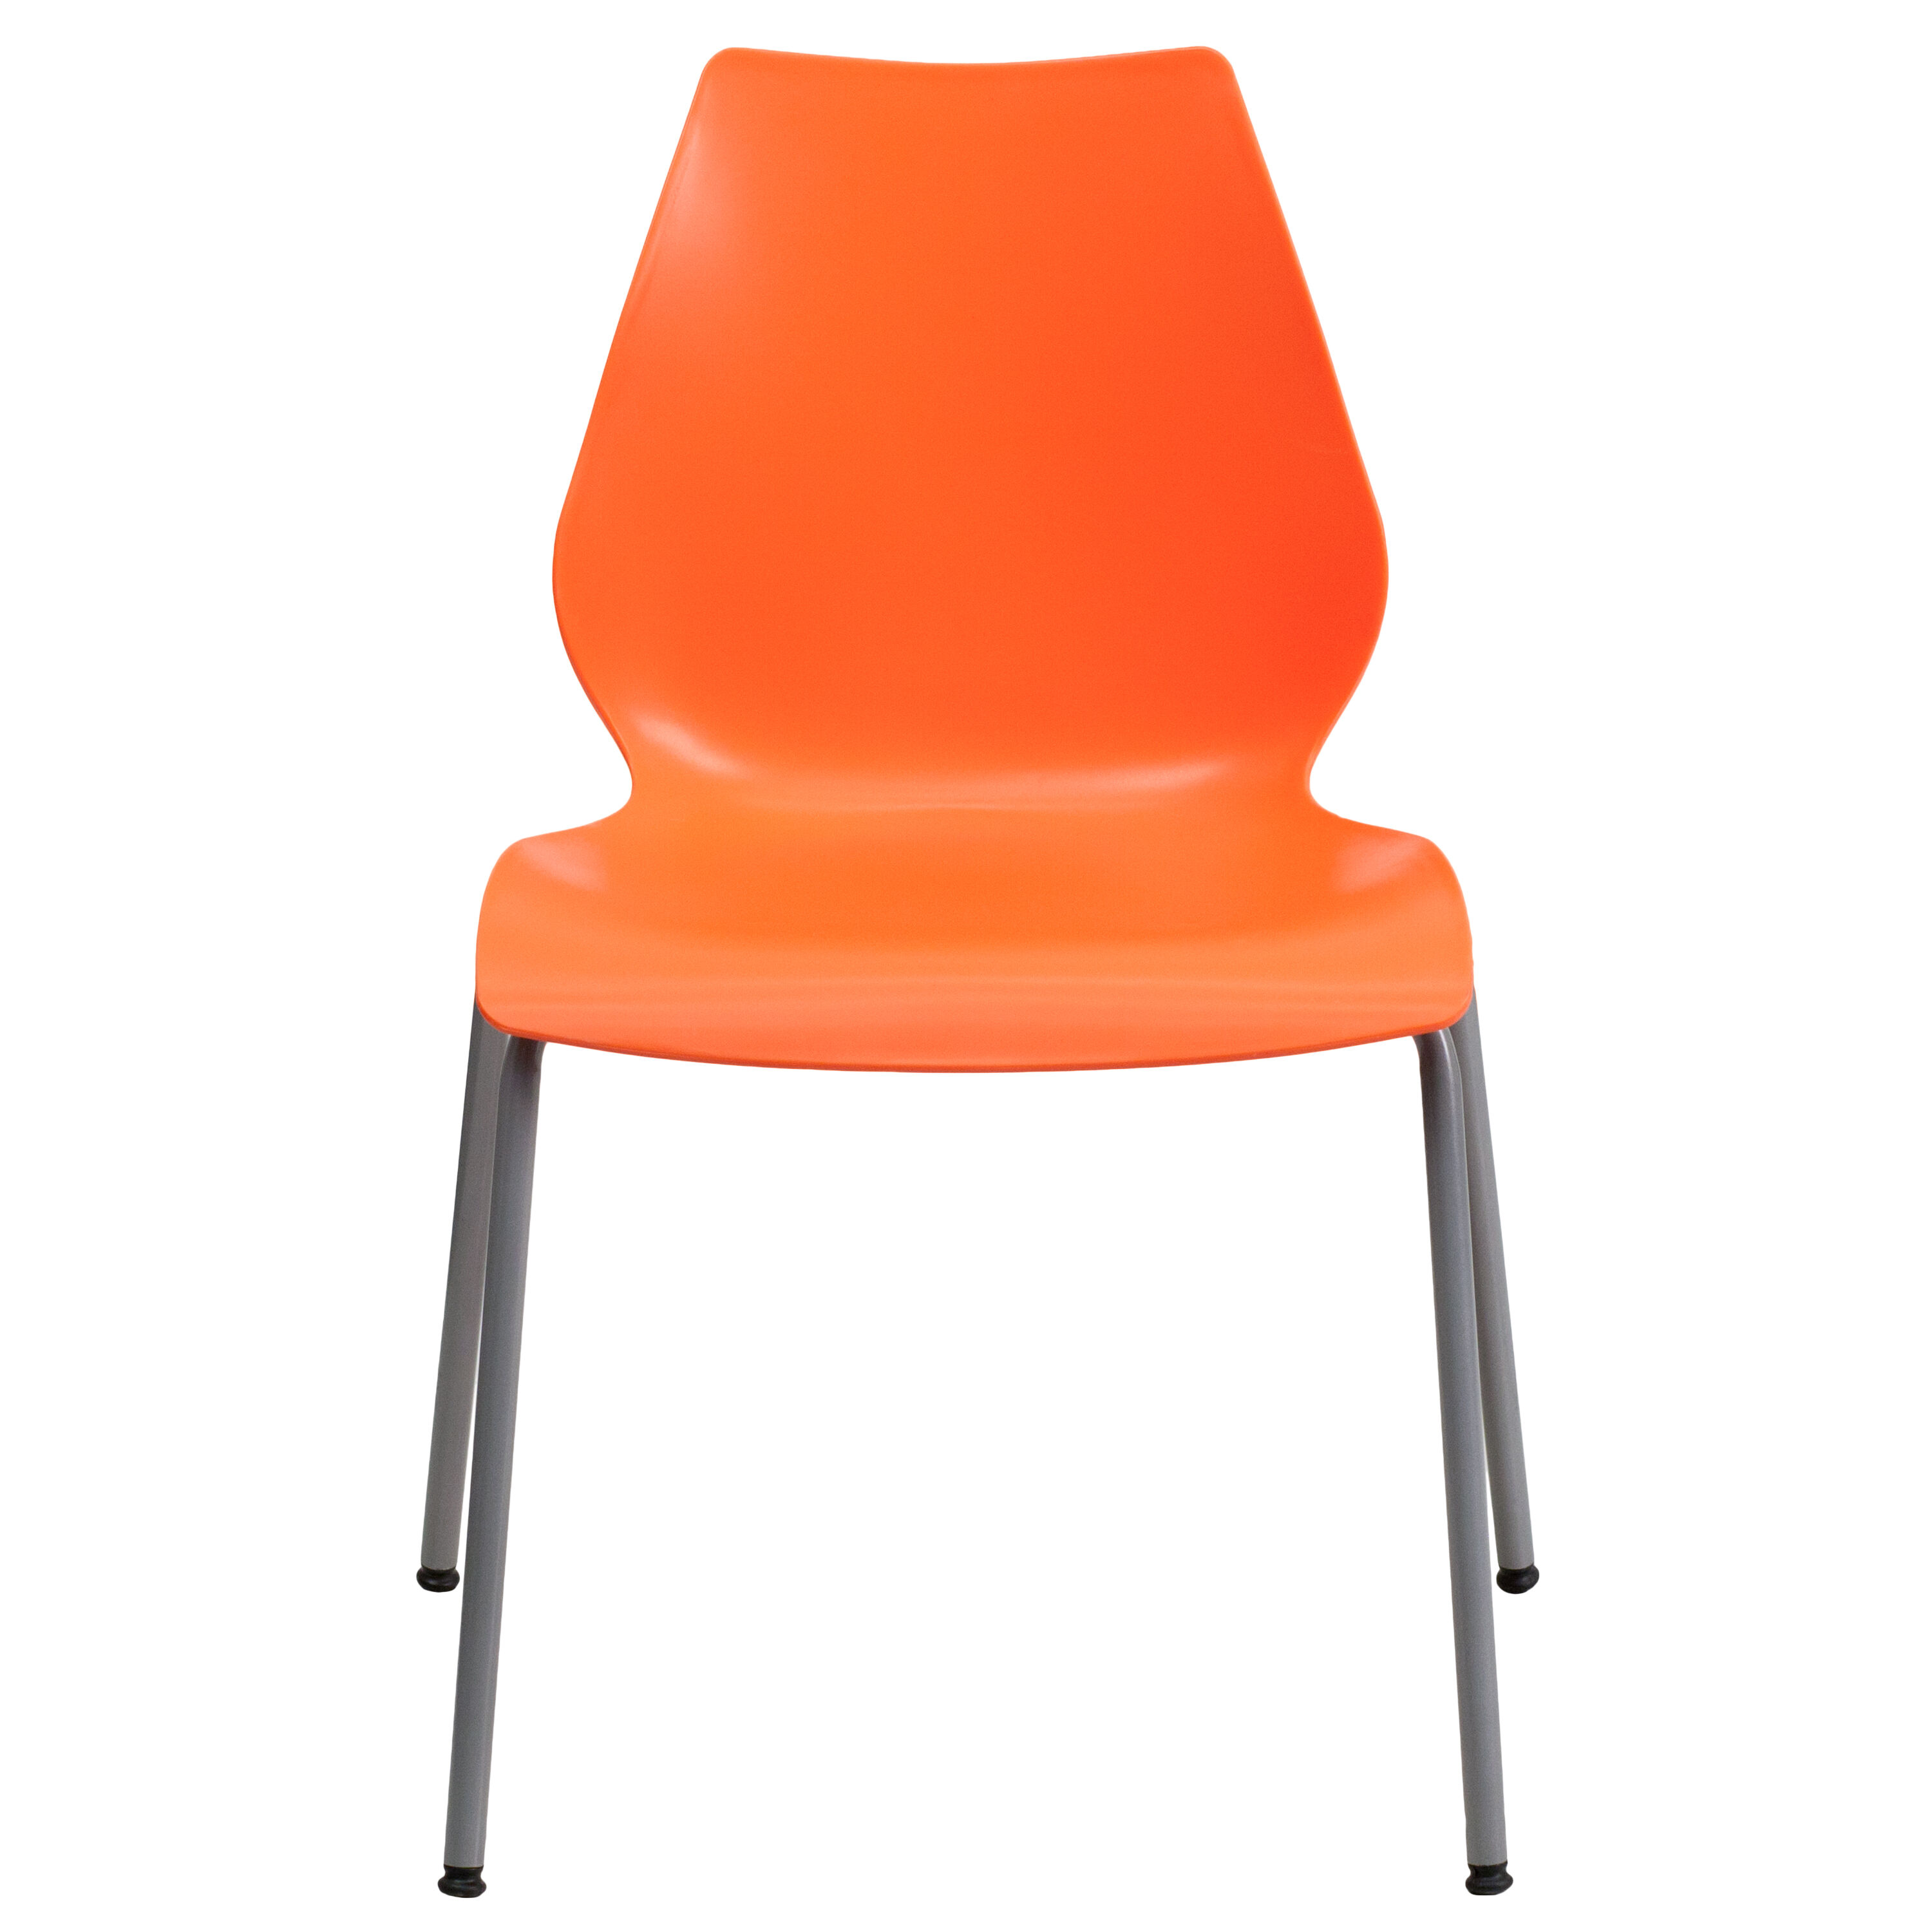 orange stackable chairs c spring patio plastic stack chair rut 288 gg